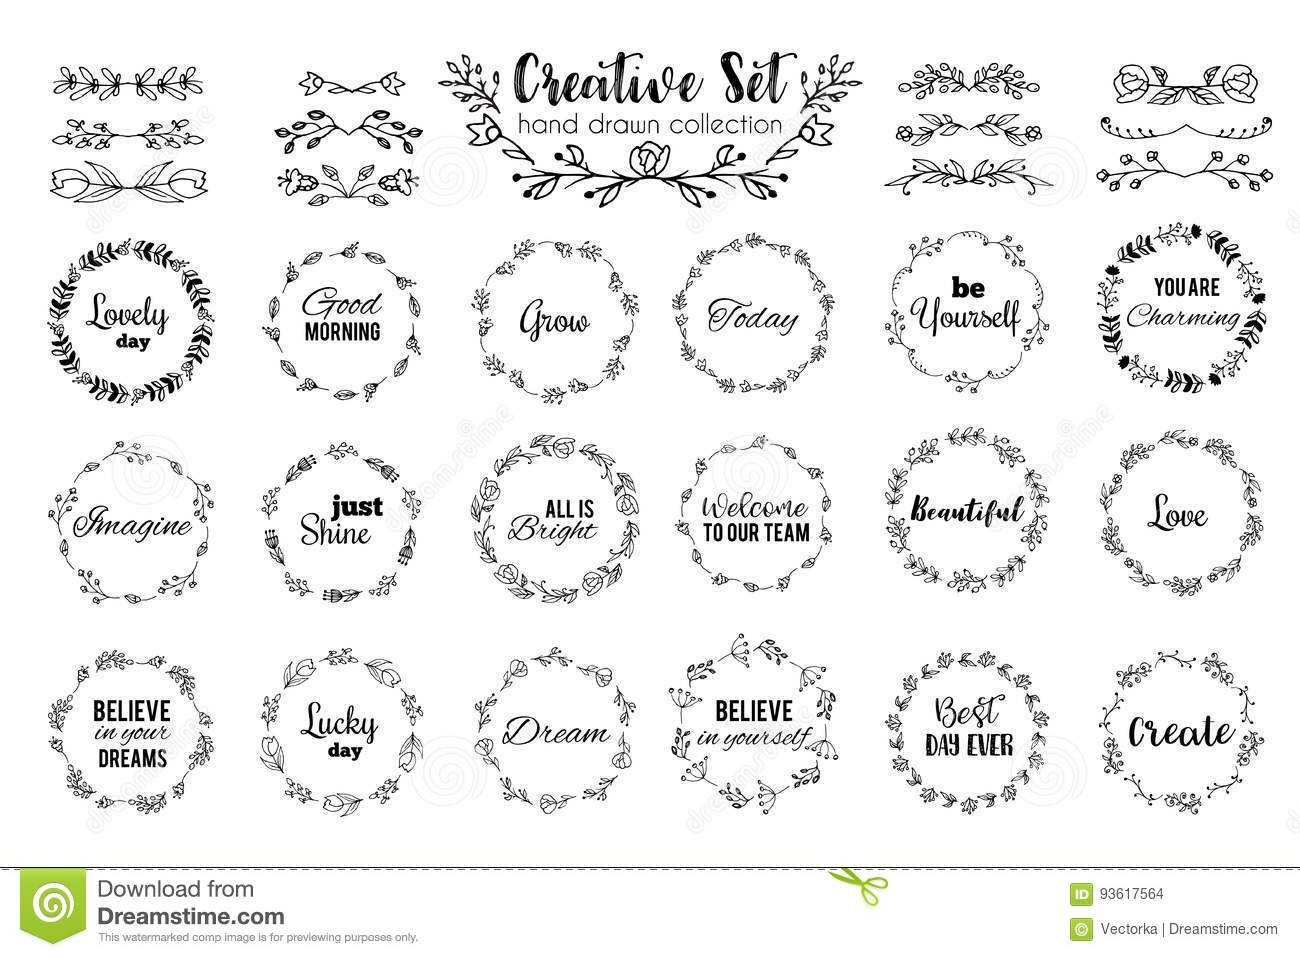 Floral wreath set. Hand drawn flourish frames. Dividers and borders. Herbal elements and flowers